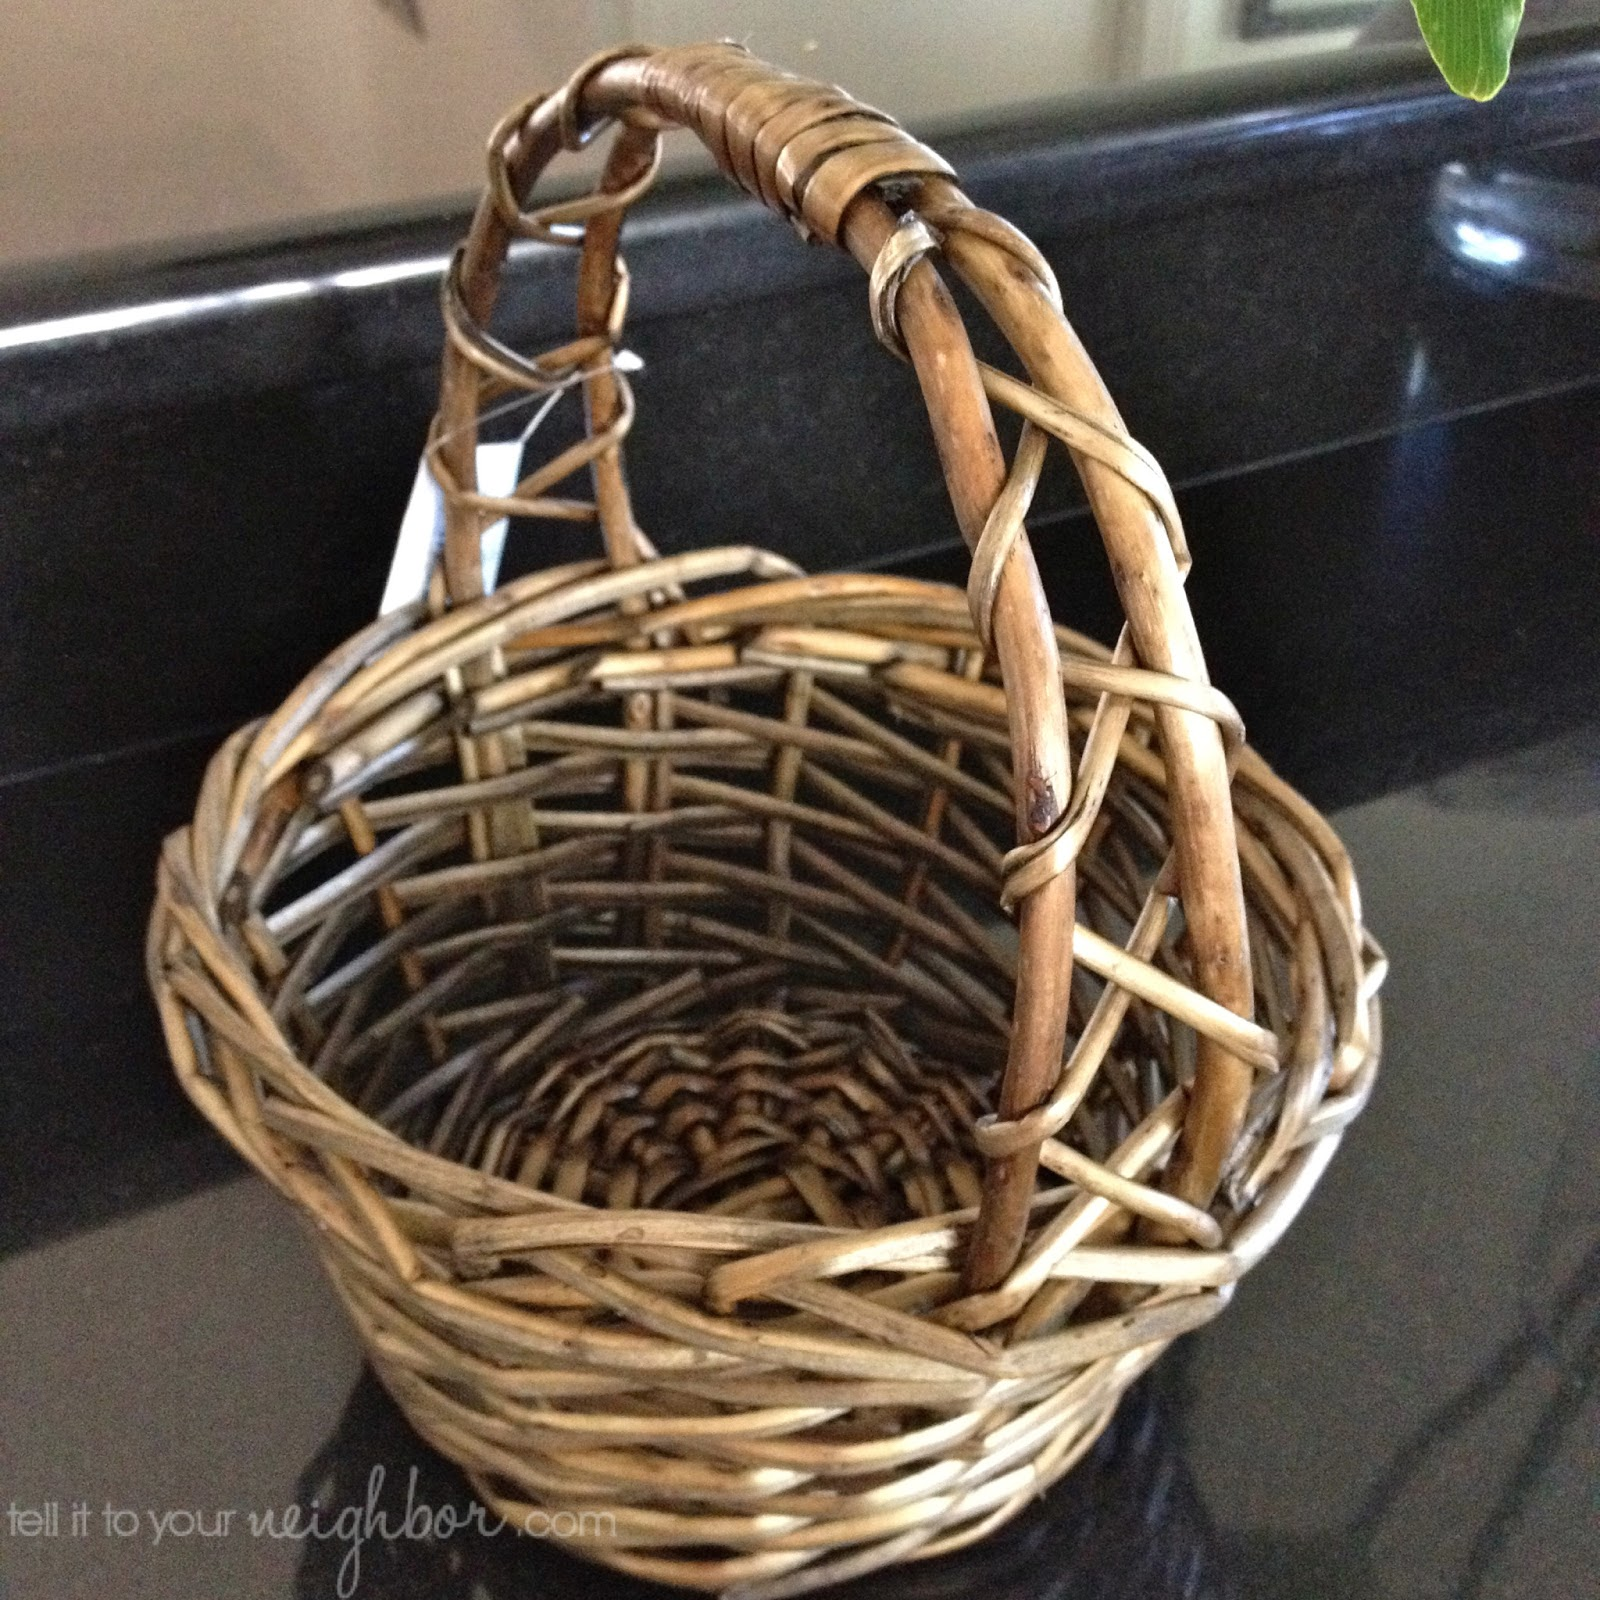 Tell it to your neighbor an easter basket for the years find a basket from a craft store with an open weave like this one from michaels negle Image collections